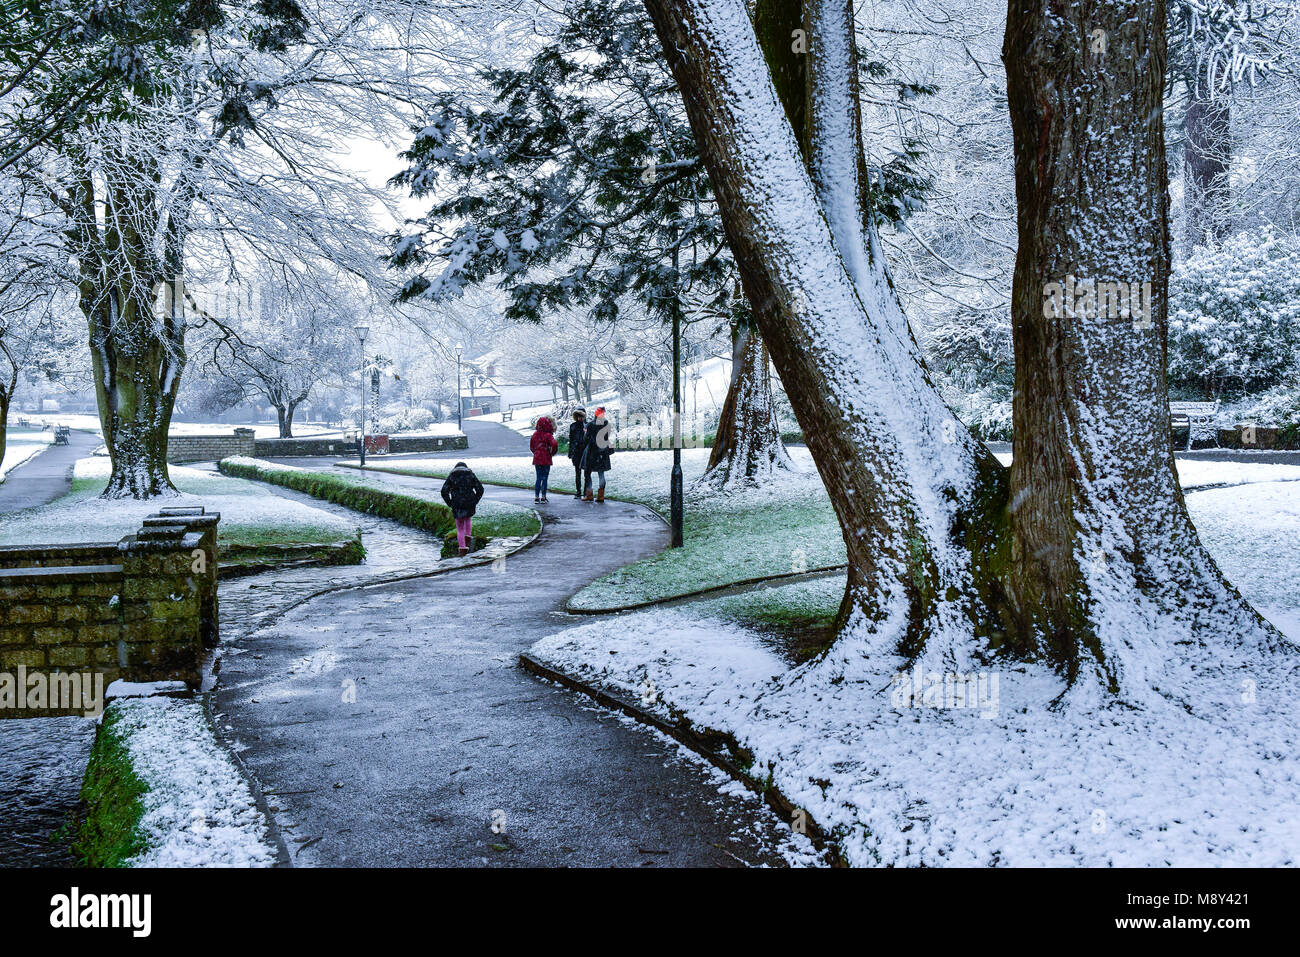 Snow fall on Trenance Gardens in Newquay Cornwall. - Stock Image